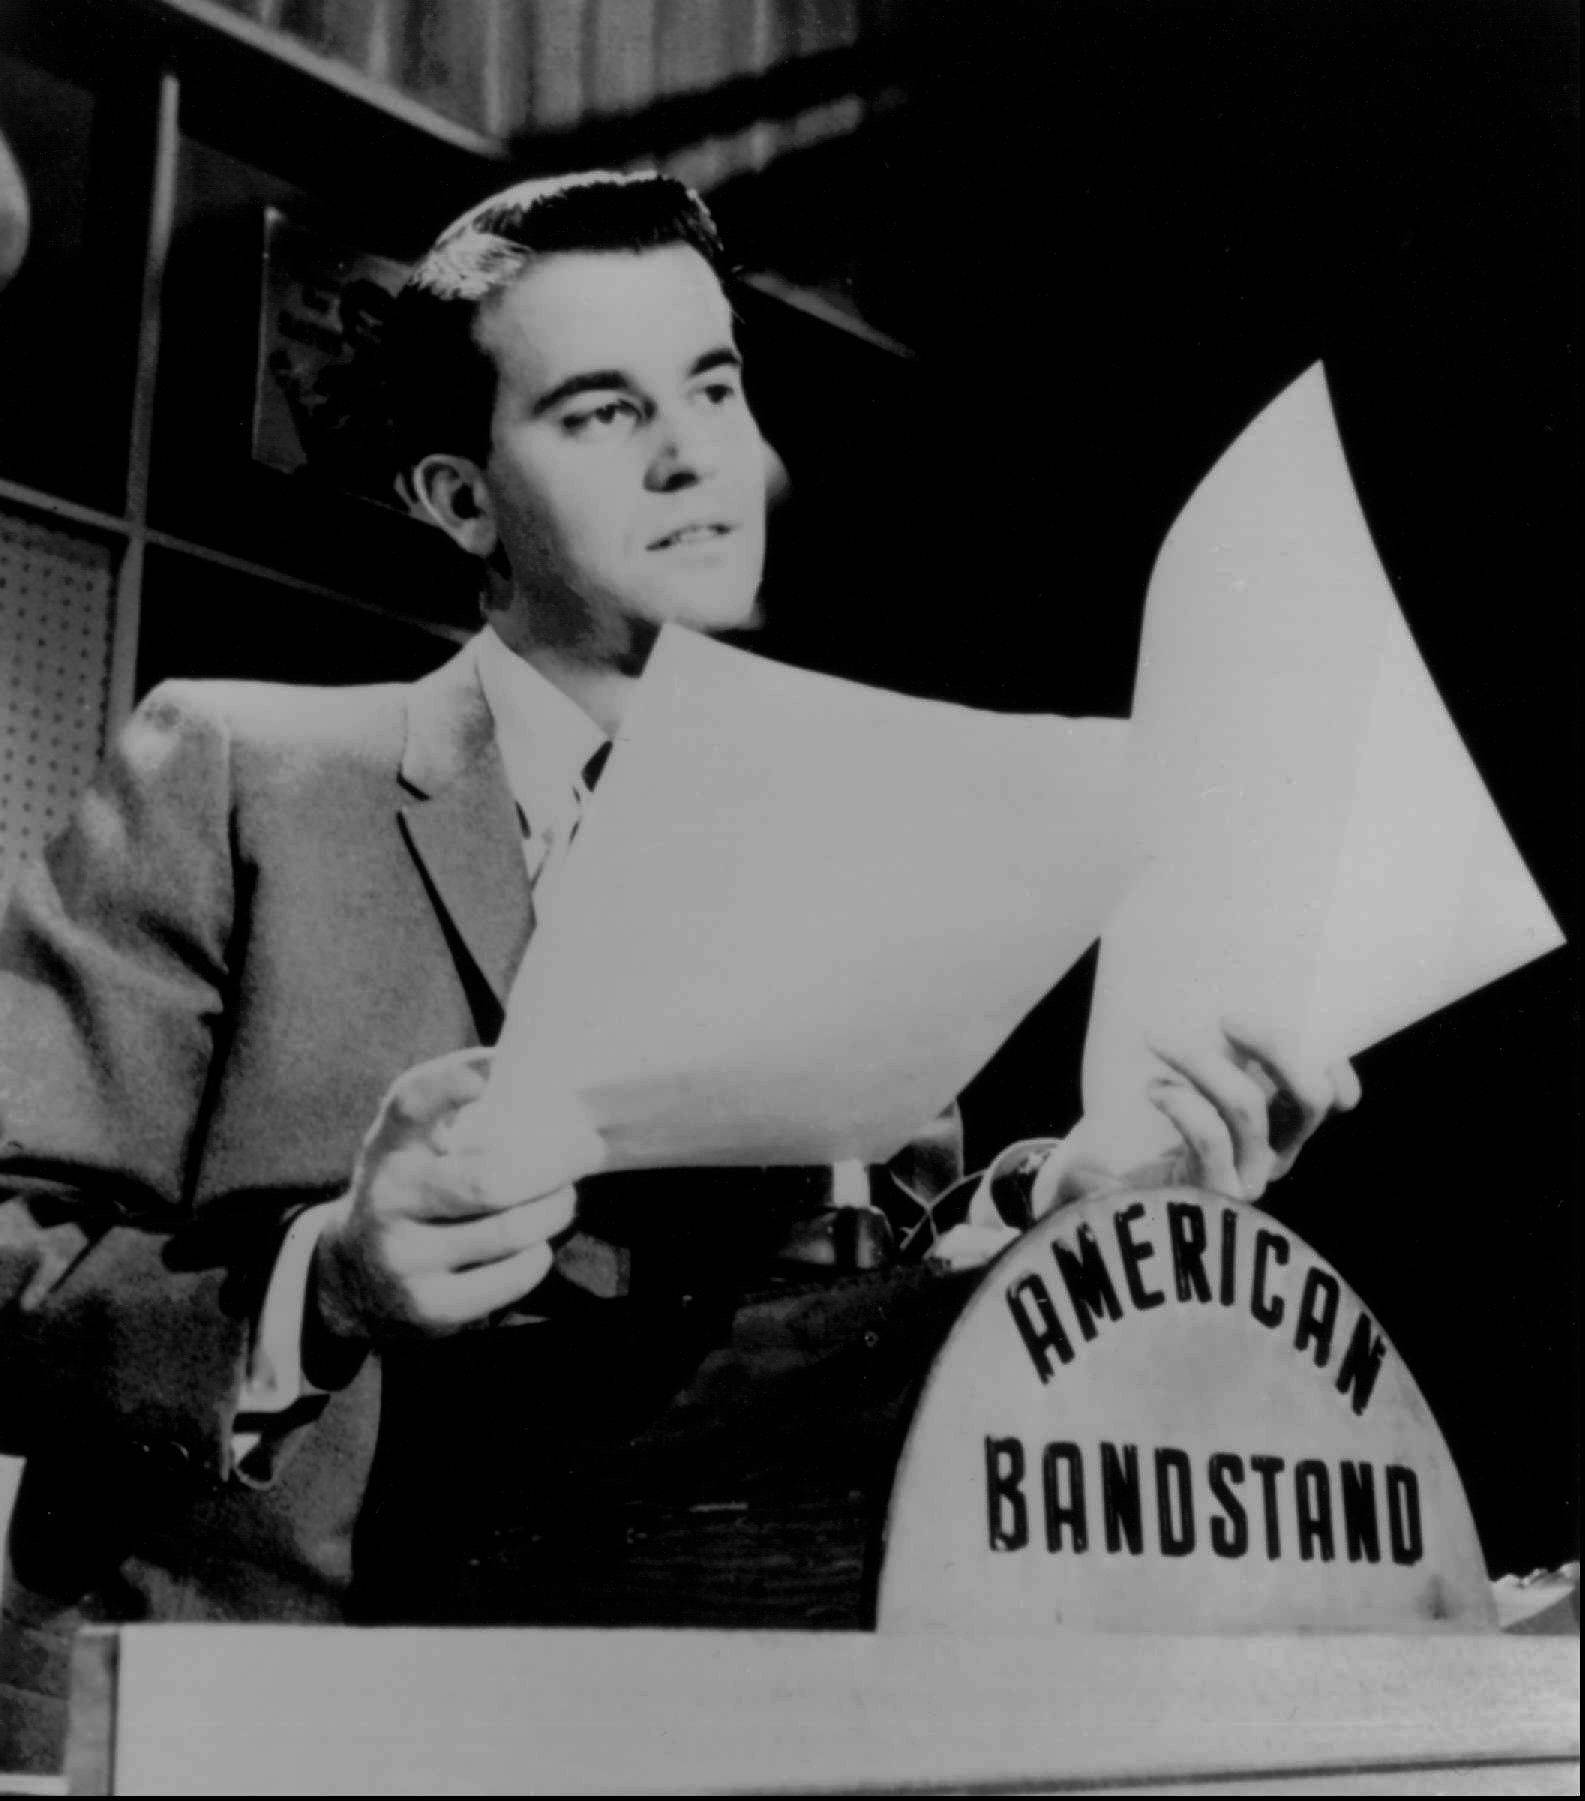 Disc jockey television personality Dick Clark looks over some papers during an American Bandstand show in Philadelphia in this undated photo.